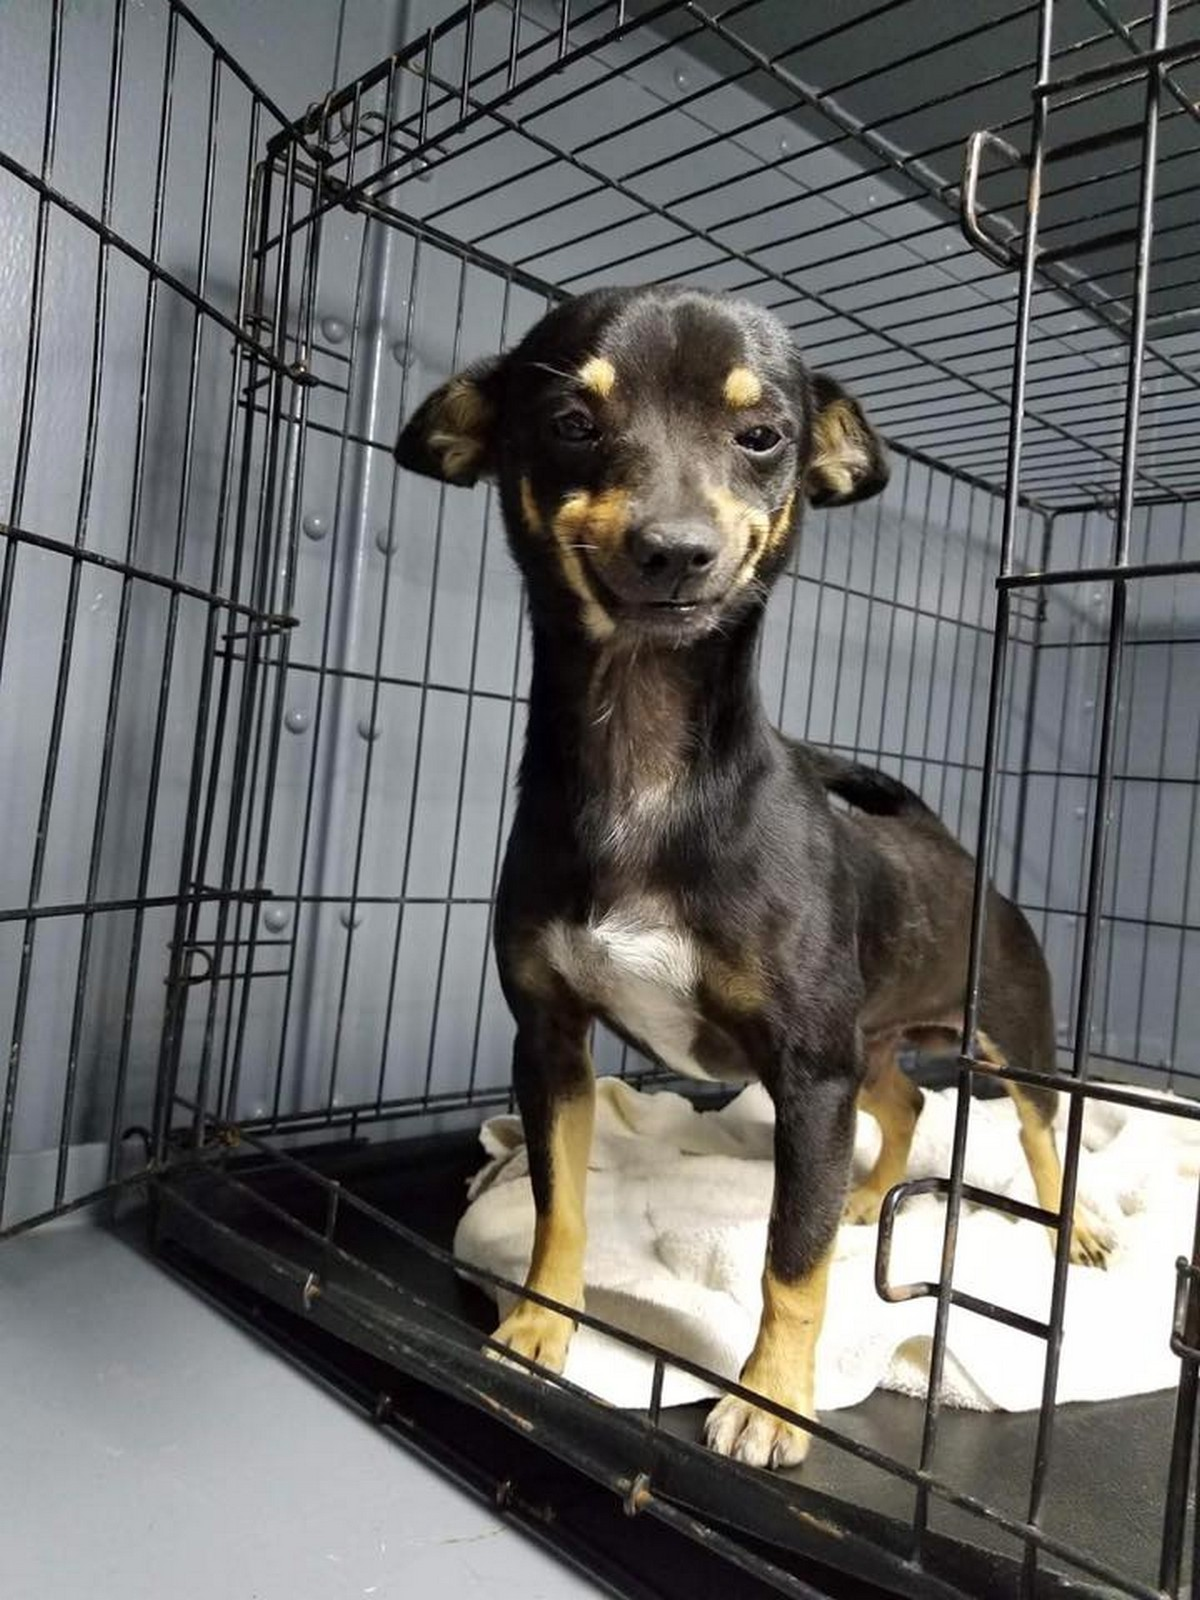 Found on the streets of Texas and brought toCity of Waller Animal Shelter and Rescue, Cheech has an adorable smile.